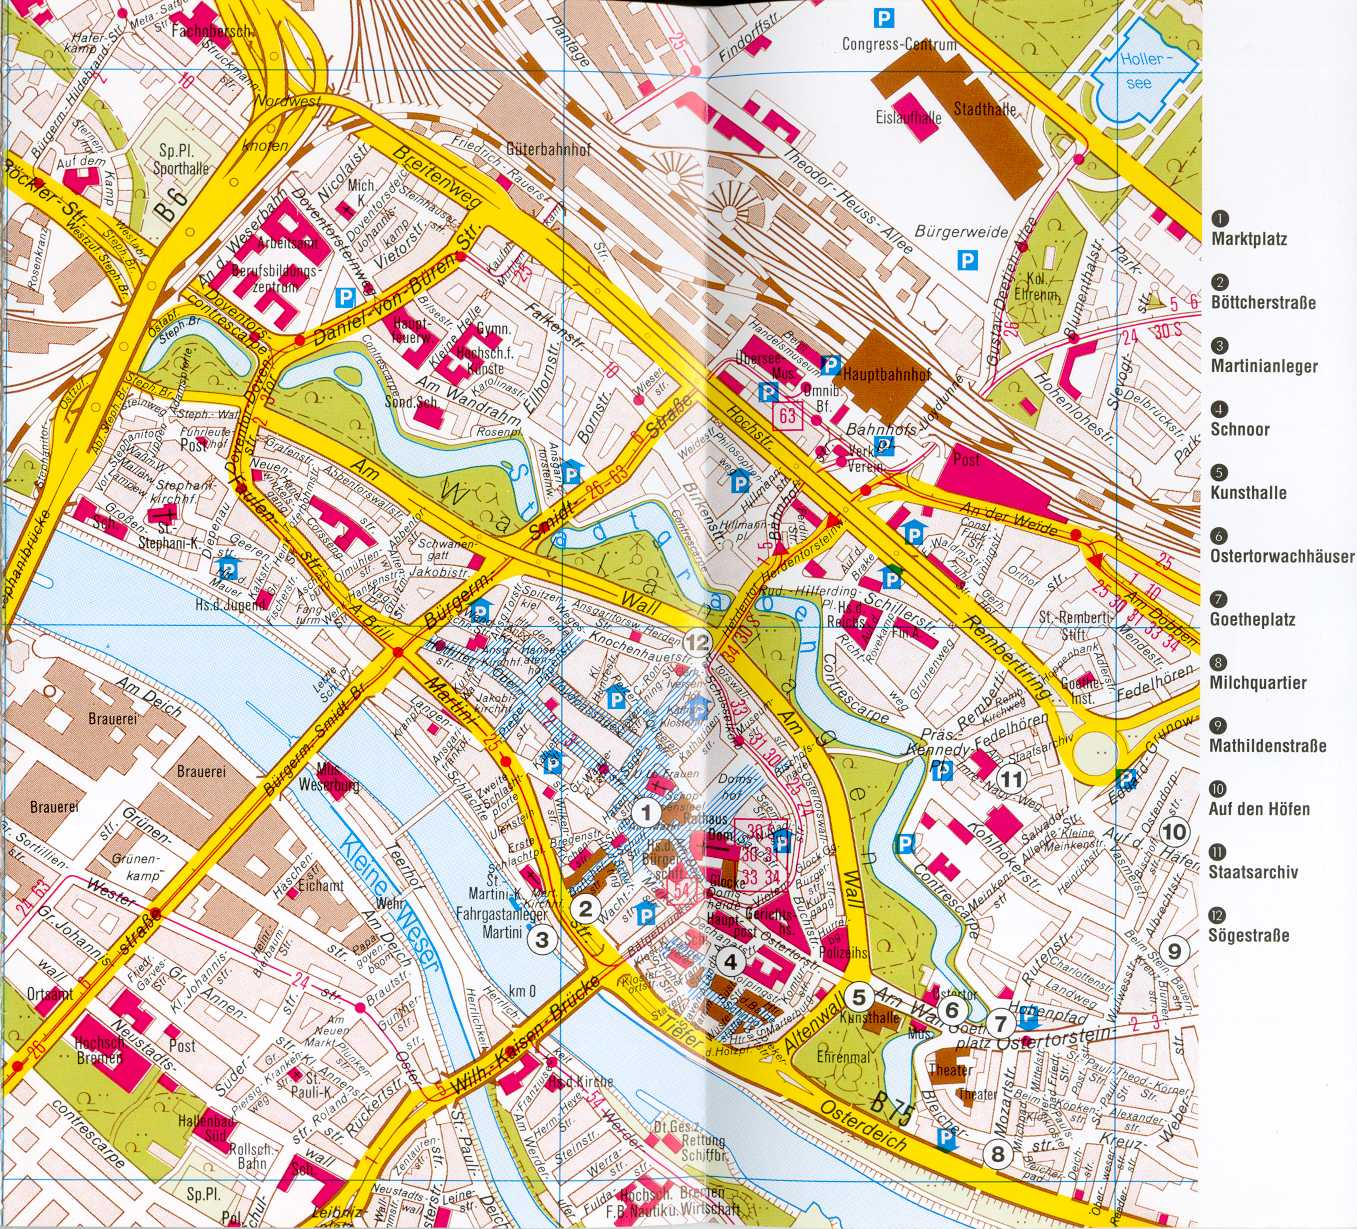 Wellness Bad Bentheim Bremen Map - Detailed City And Metro Maps Of Bremen For